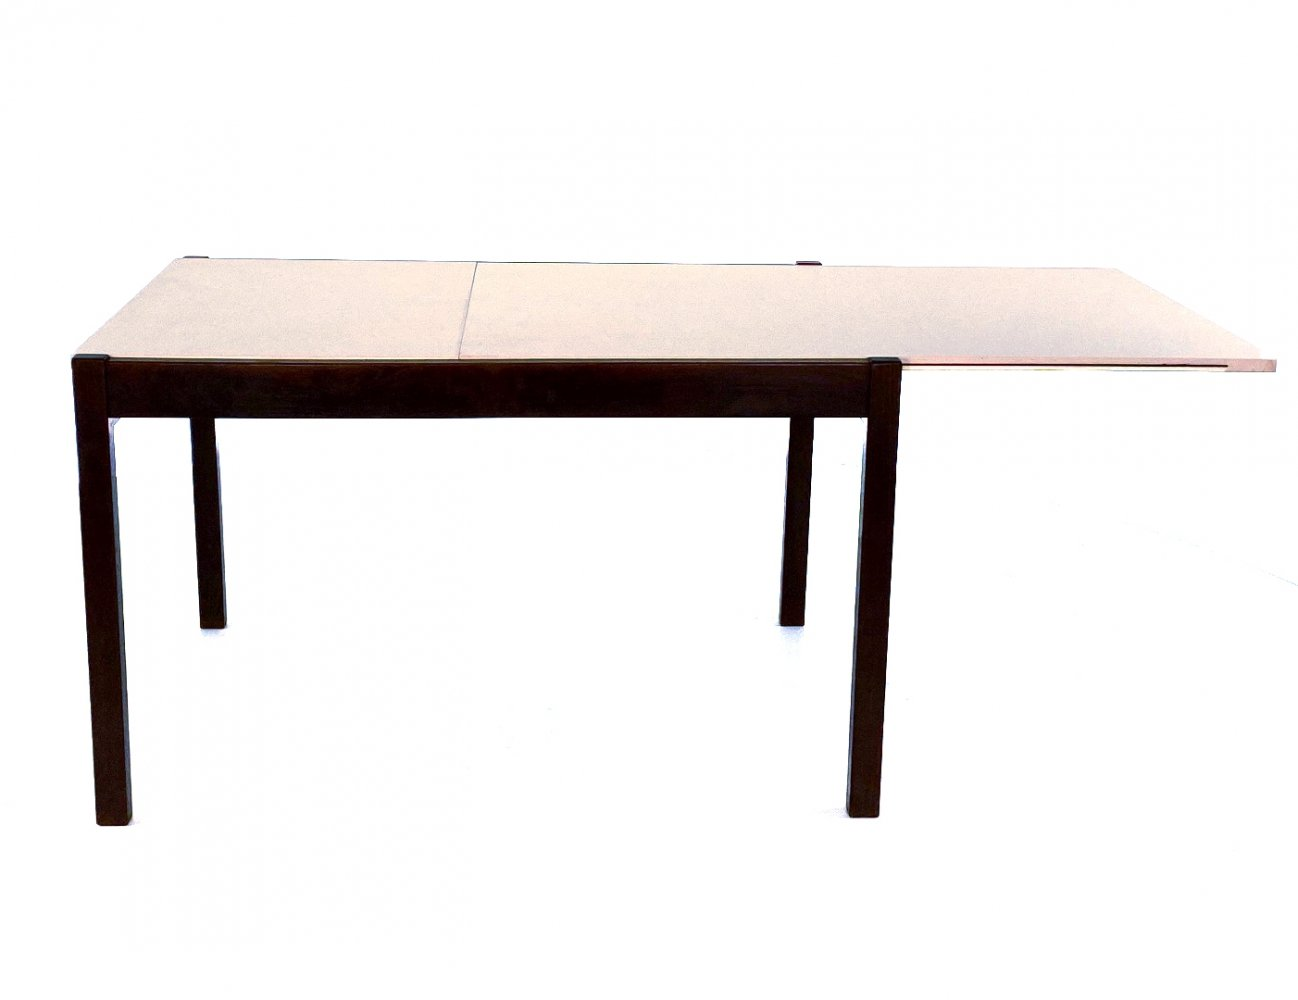 Vintage extendable dining table by Cees Braakman for Pastoe, 1960s